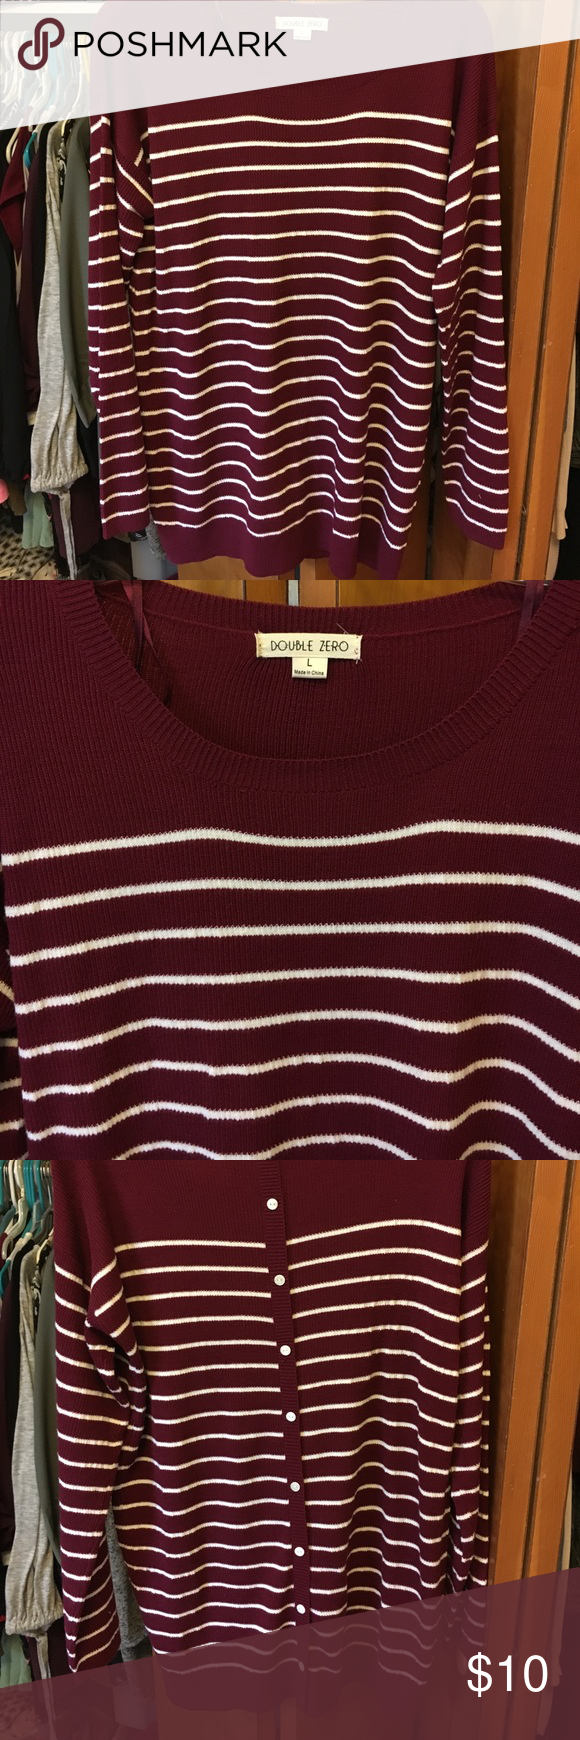 Maroon and white striped sweater | Crew neck, Stripes and Scoop neck